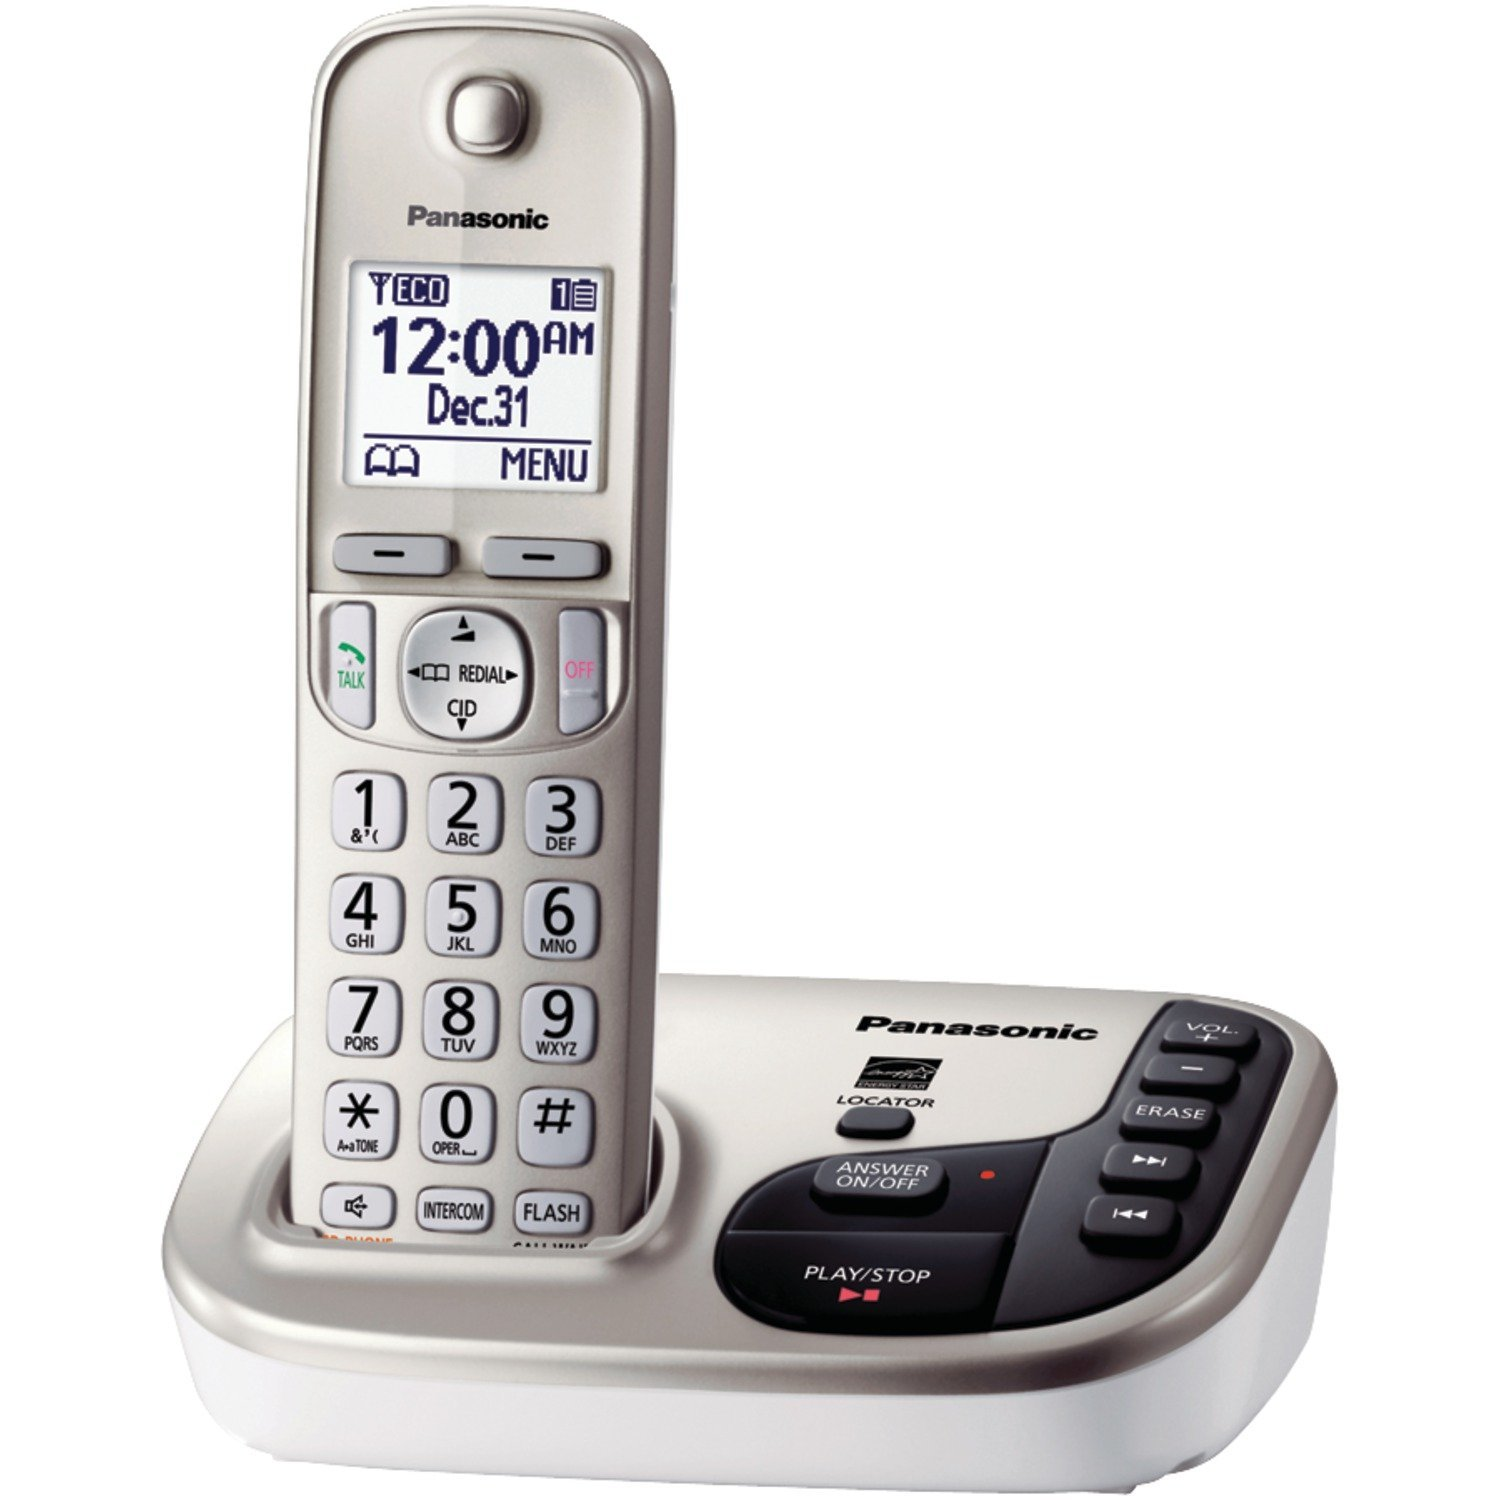 Panasonic Expandable Digital Cordless Answering System – Ringer ID, Call Block, Multiple Styles Available